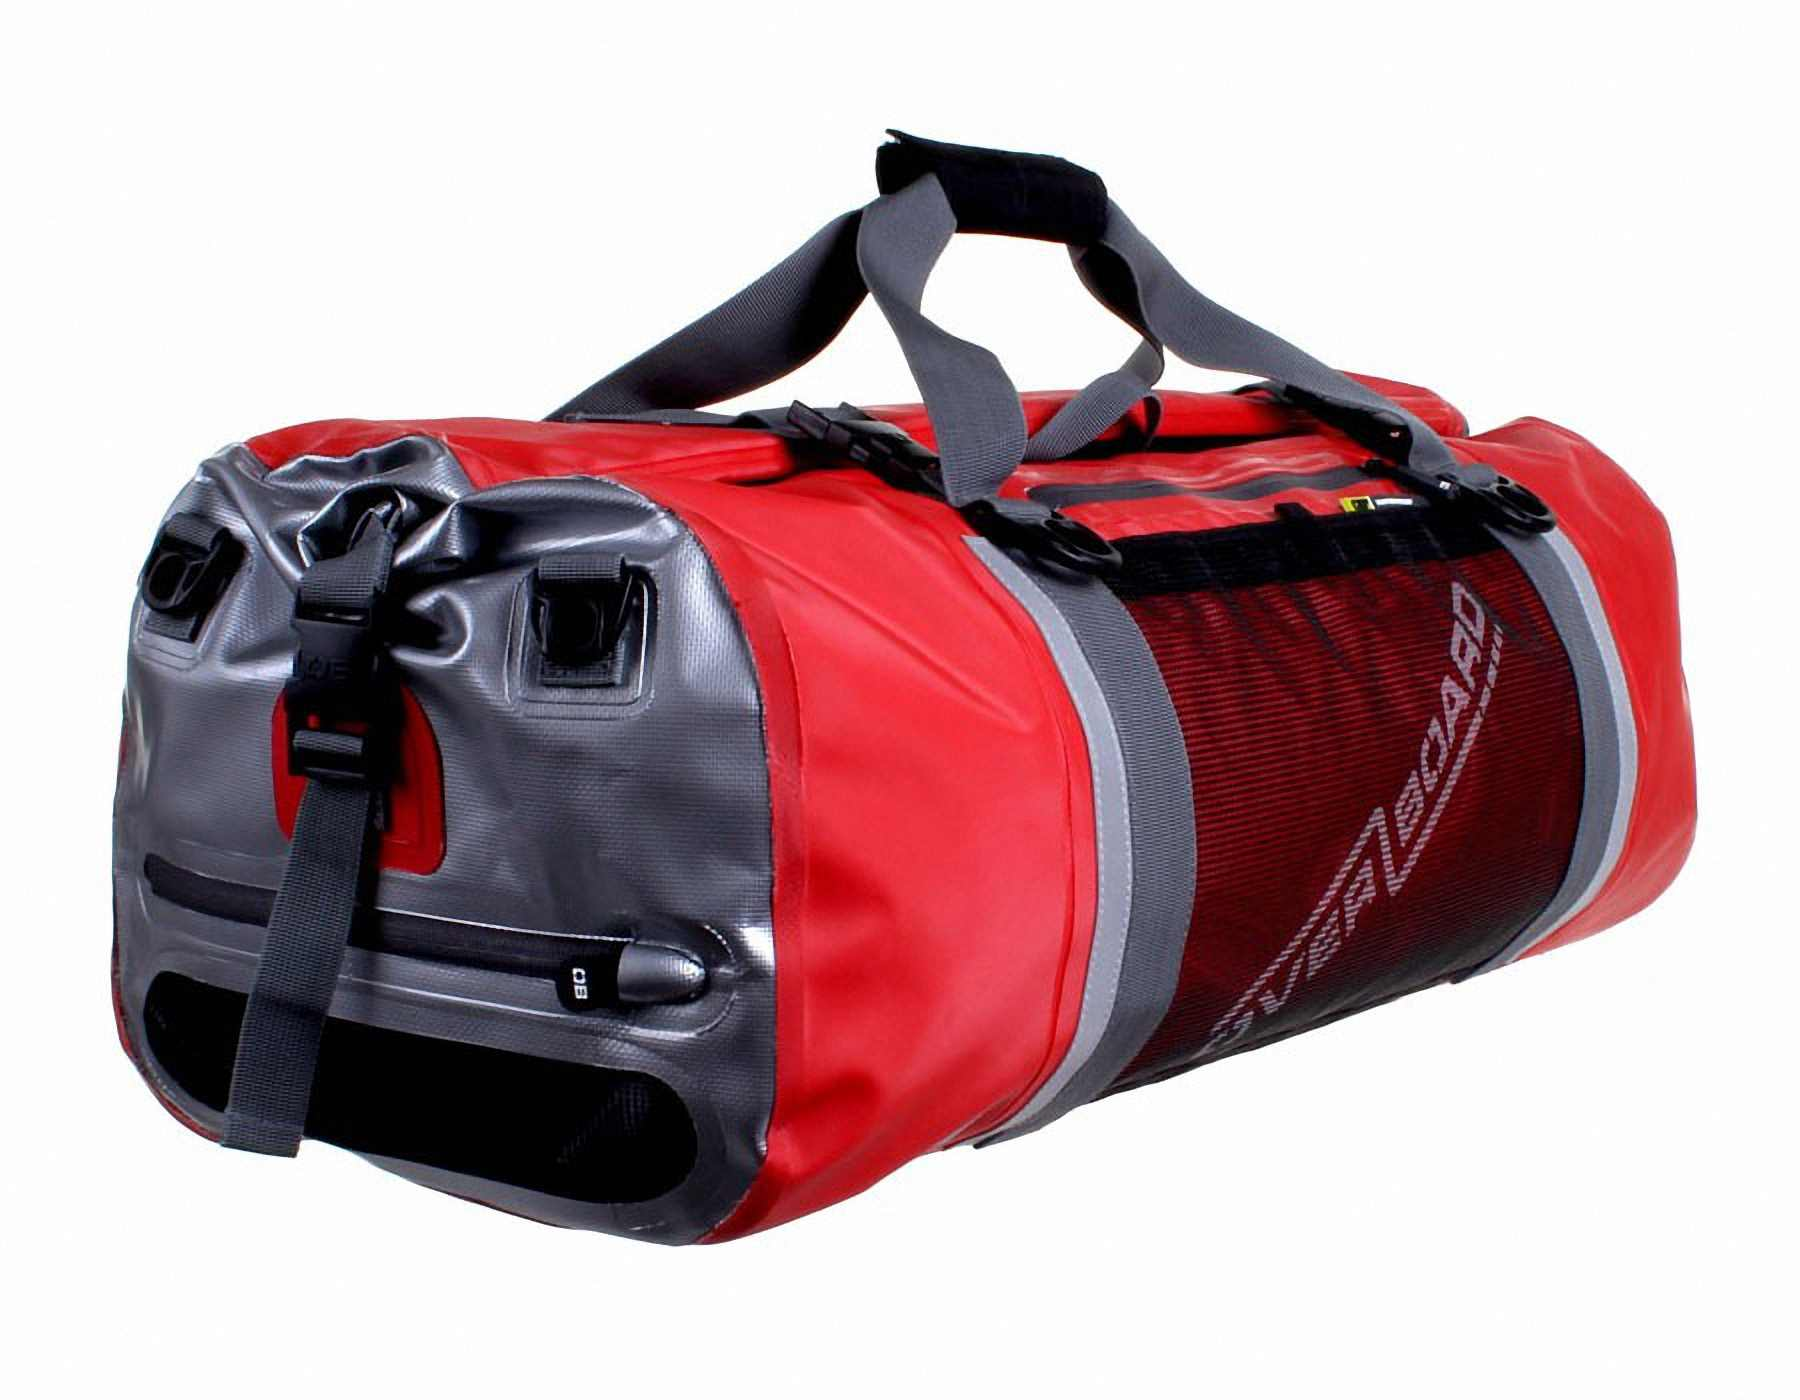 Водонепроницаемая сумка OverBoard OB1154R - Pro-Sports Waterproof Duffel Bag - 60 литров.  Фото 2